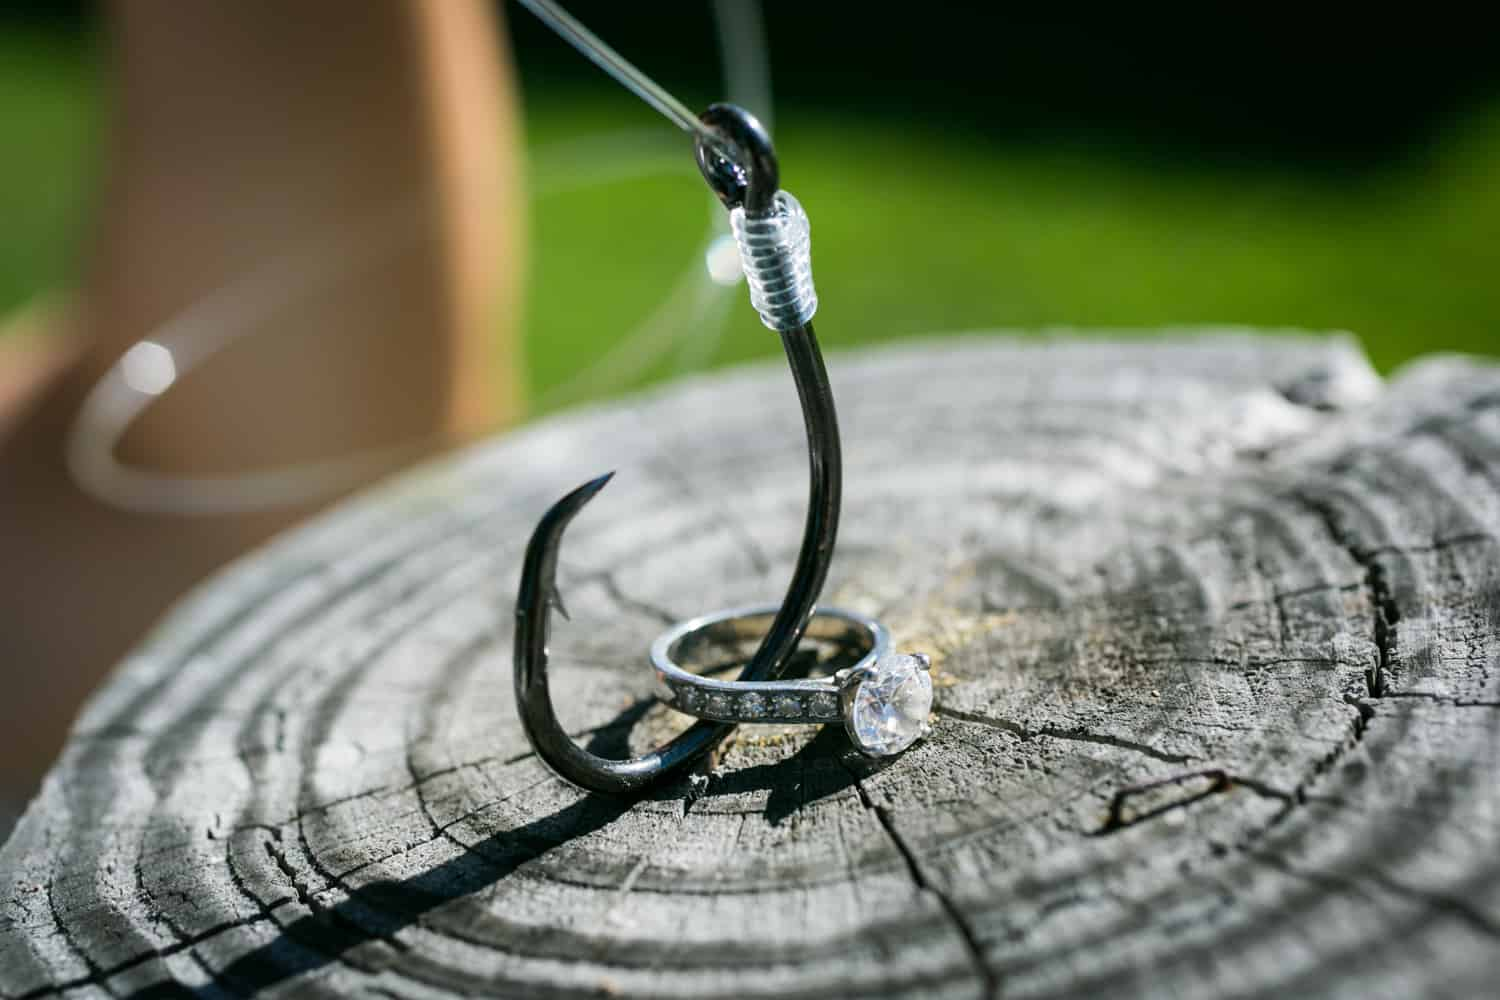 Fishing hook and engagement ring